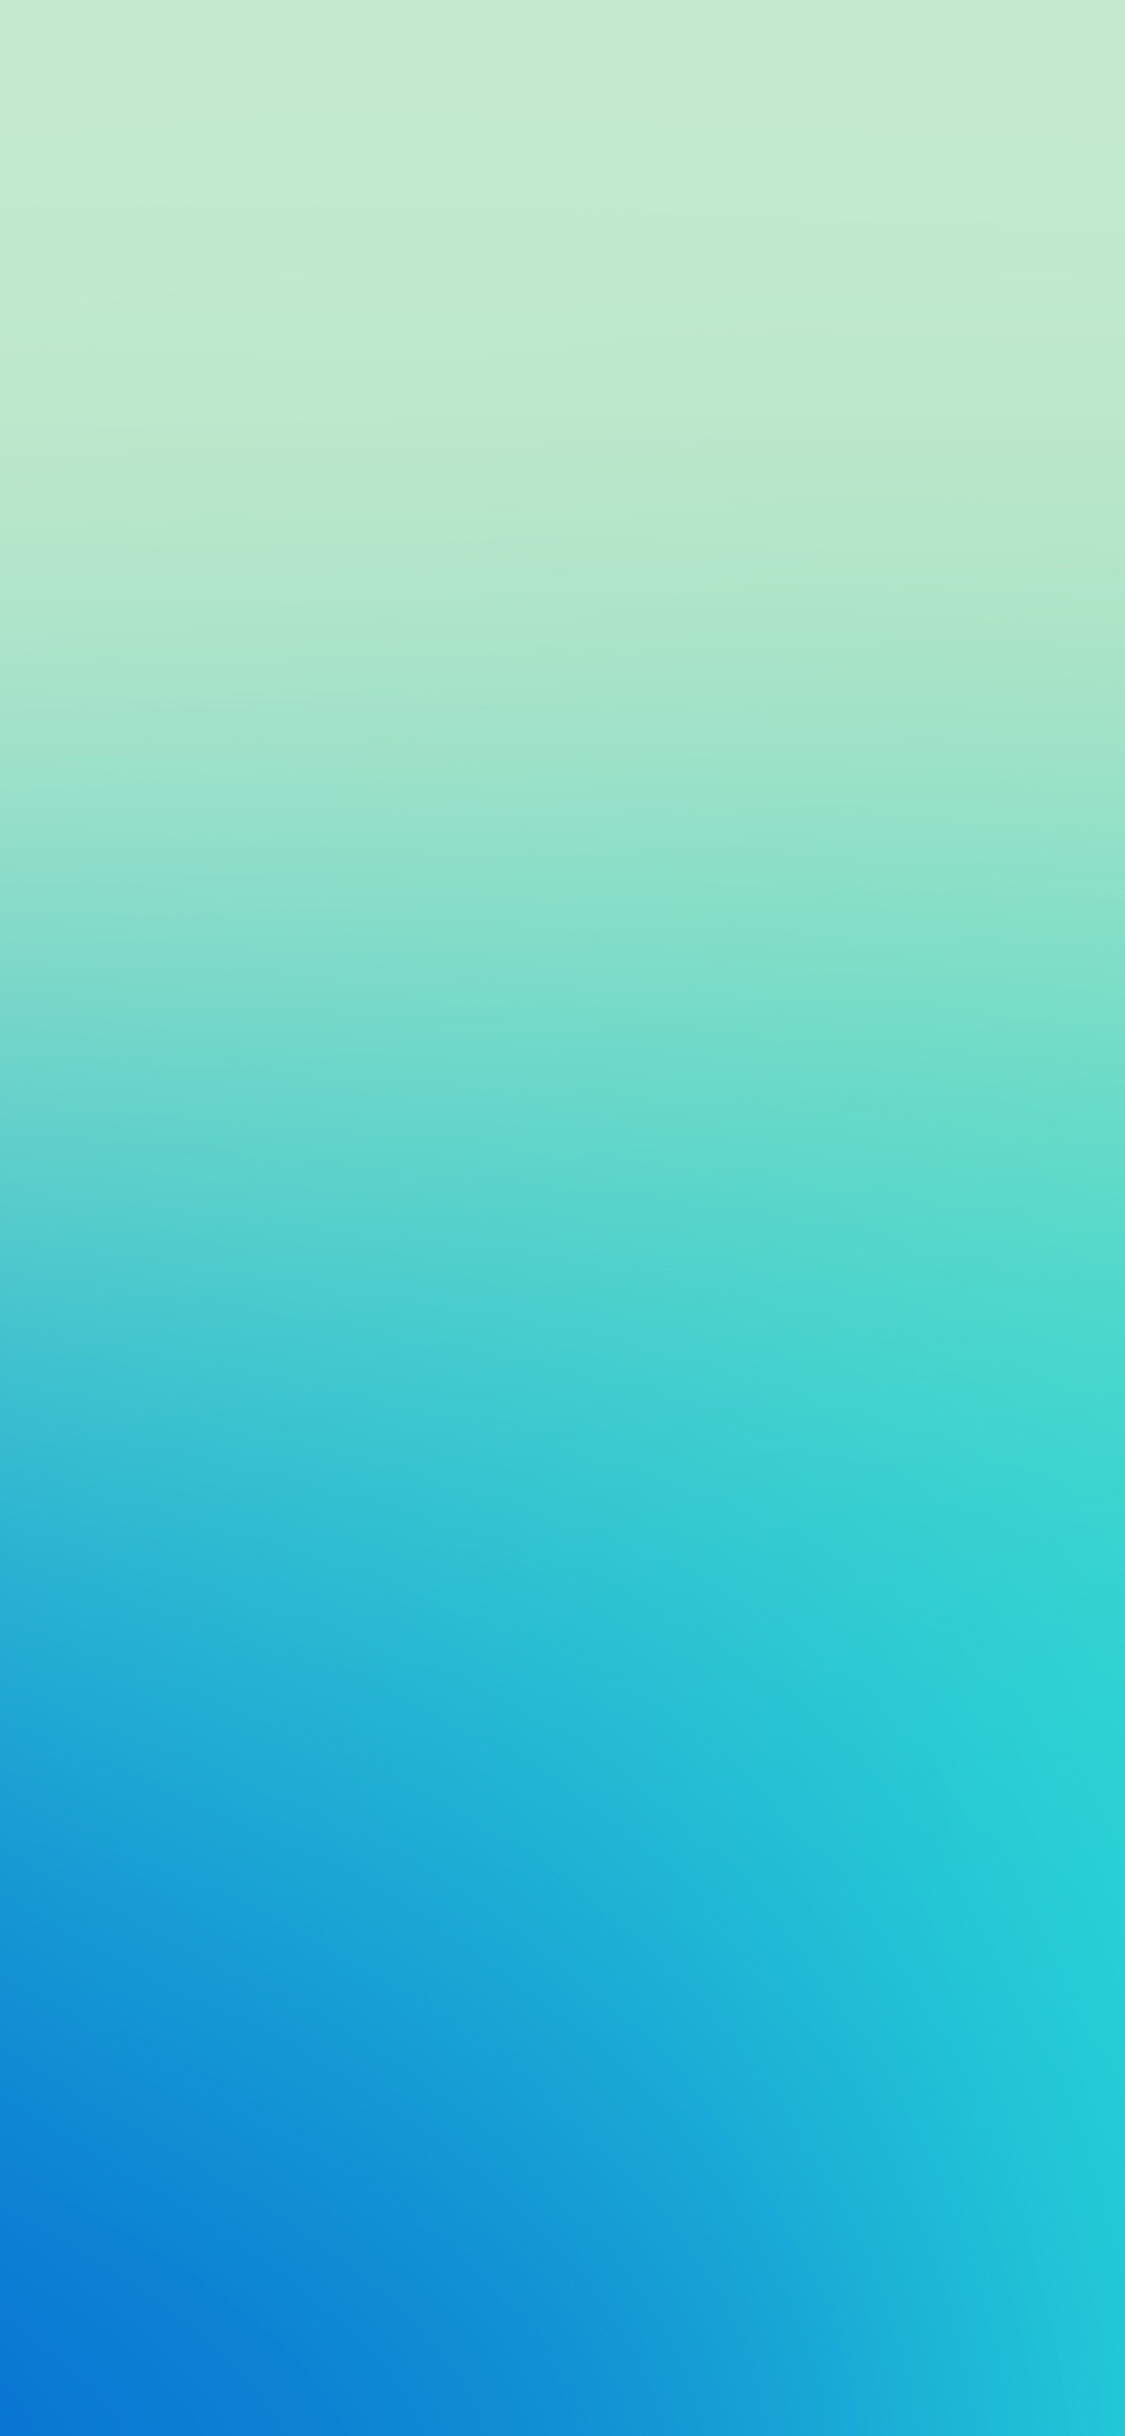 iPhoneXpapers.com-Apple-iPhone-wallpaper-sb21-wallpaper-gradient-blue-candy-blur